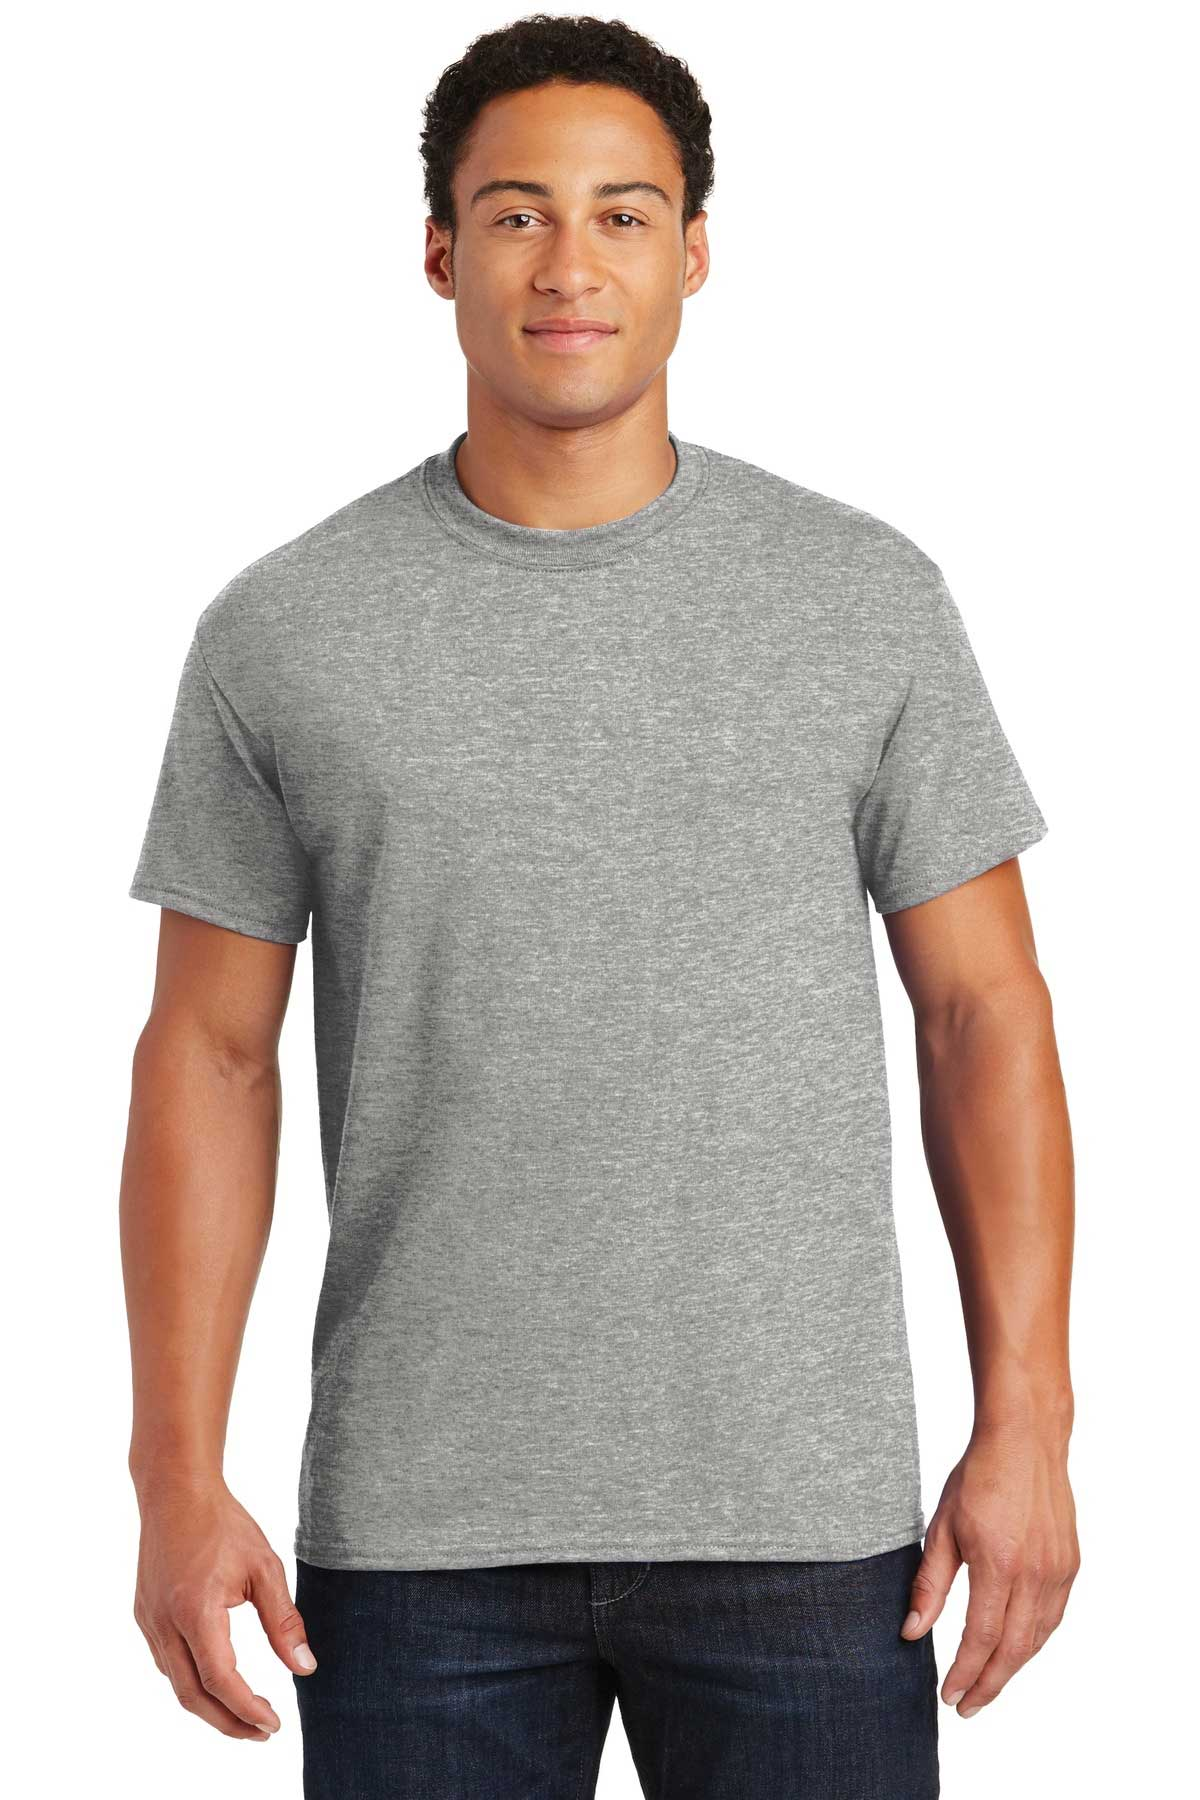 Gildan dryblend 50 cotton 50 poly t shirt 8000 for Gildan dryblend 50 cotton 50 poly t shirt 8000